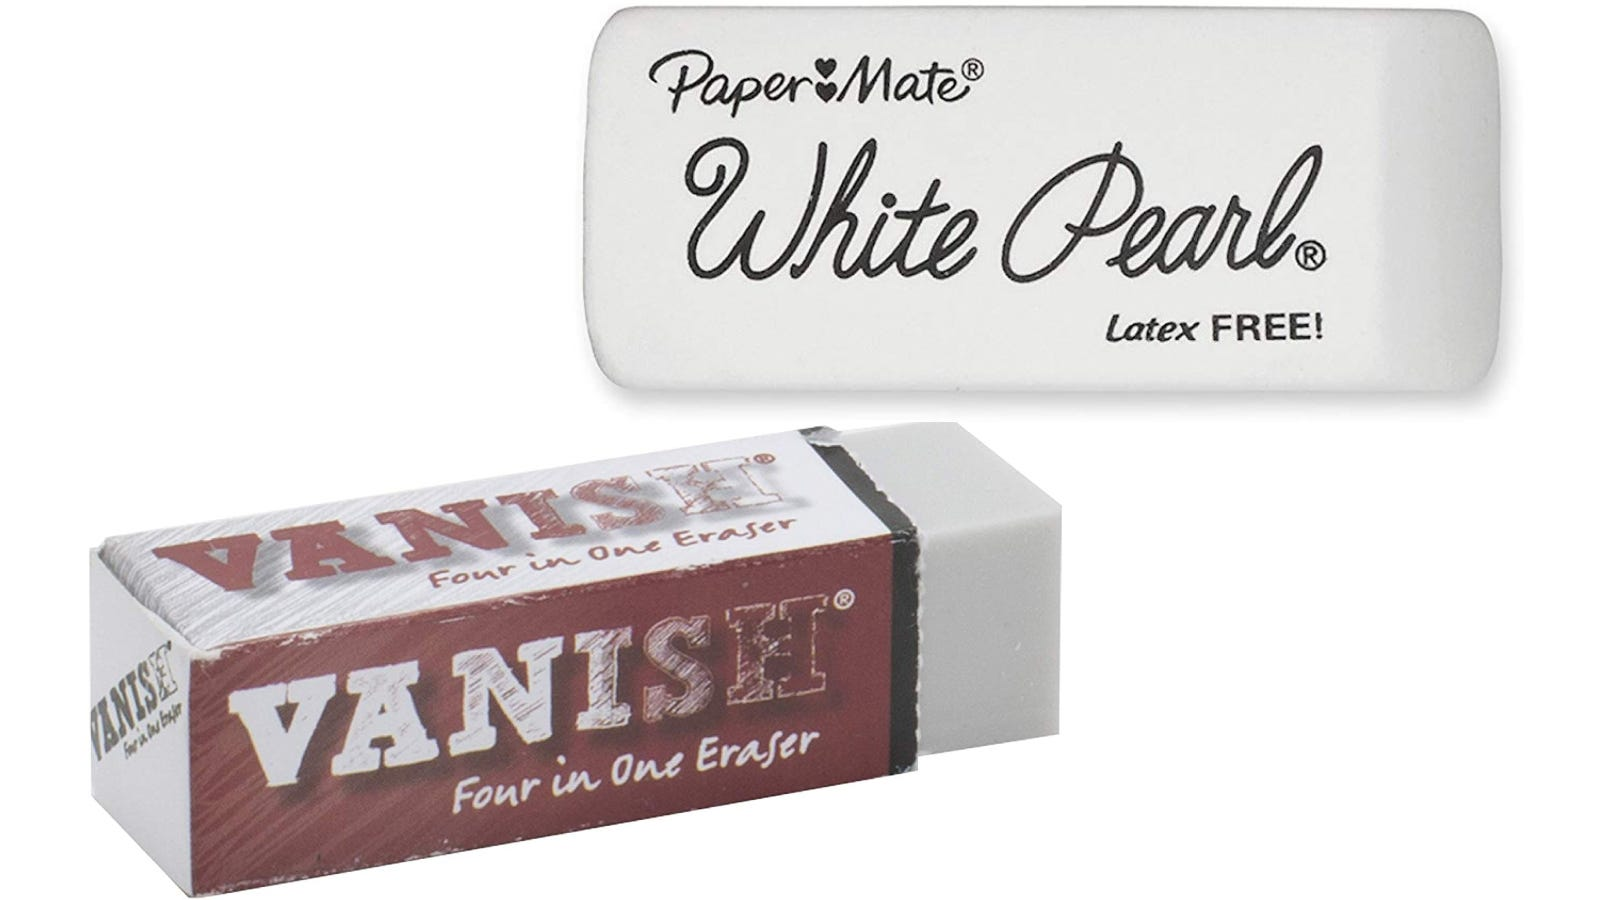 Paper Mate White Pearl Premium Erasers and Vanish 4-in-1 Artist Eraser